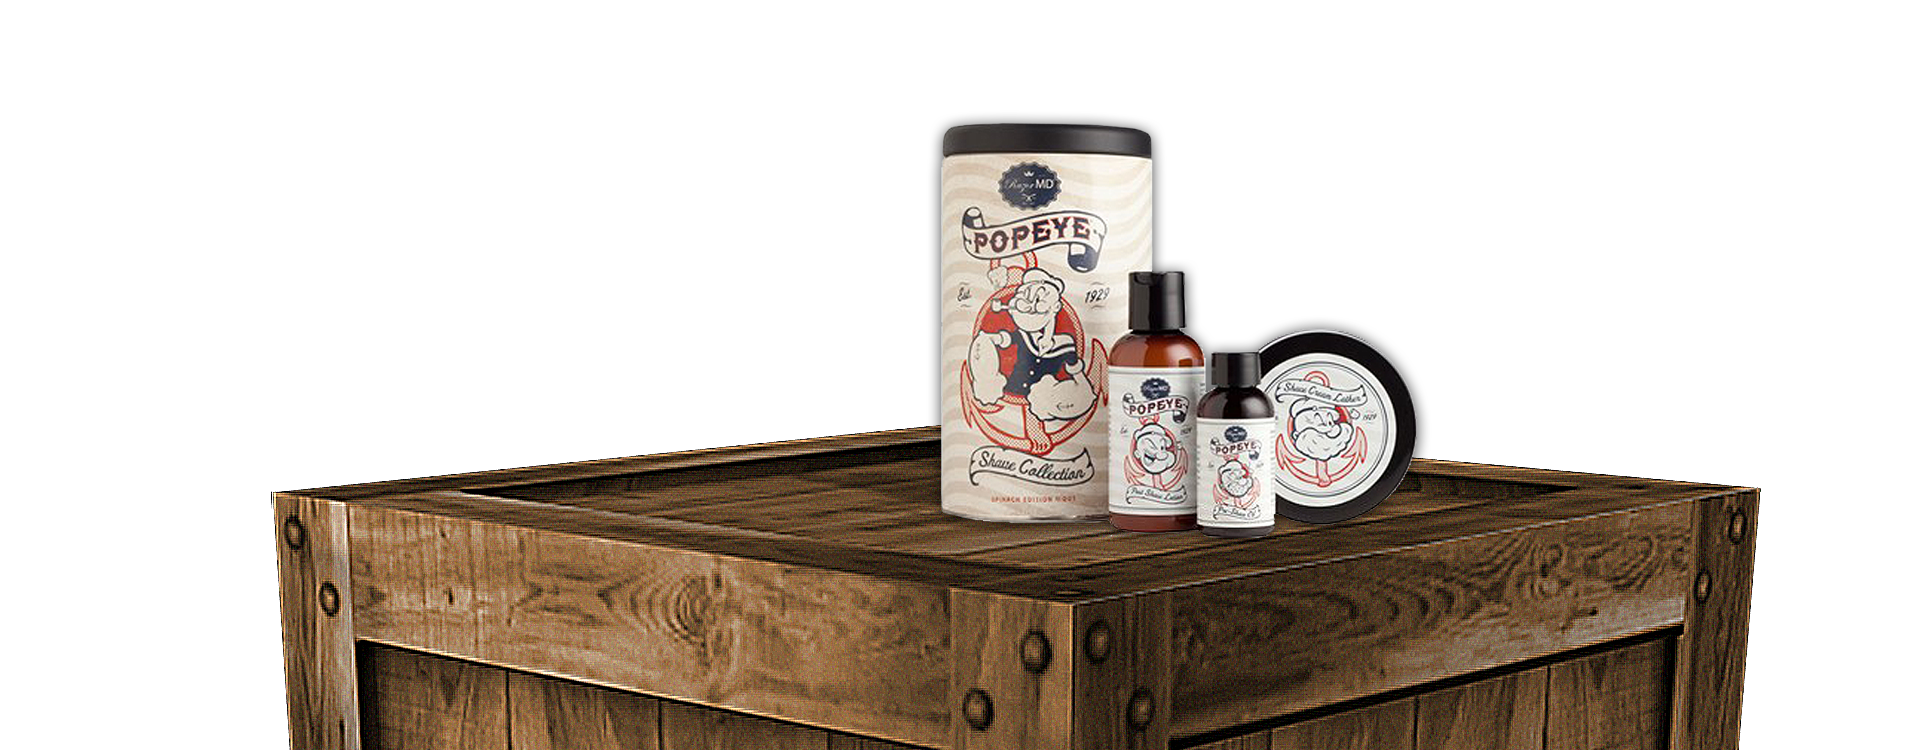 Homepage slide gift sets popeye image